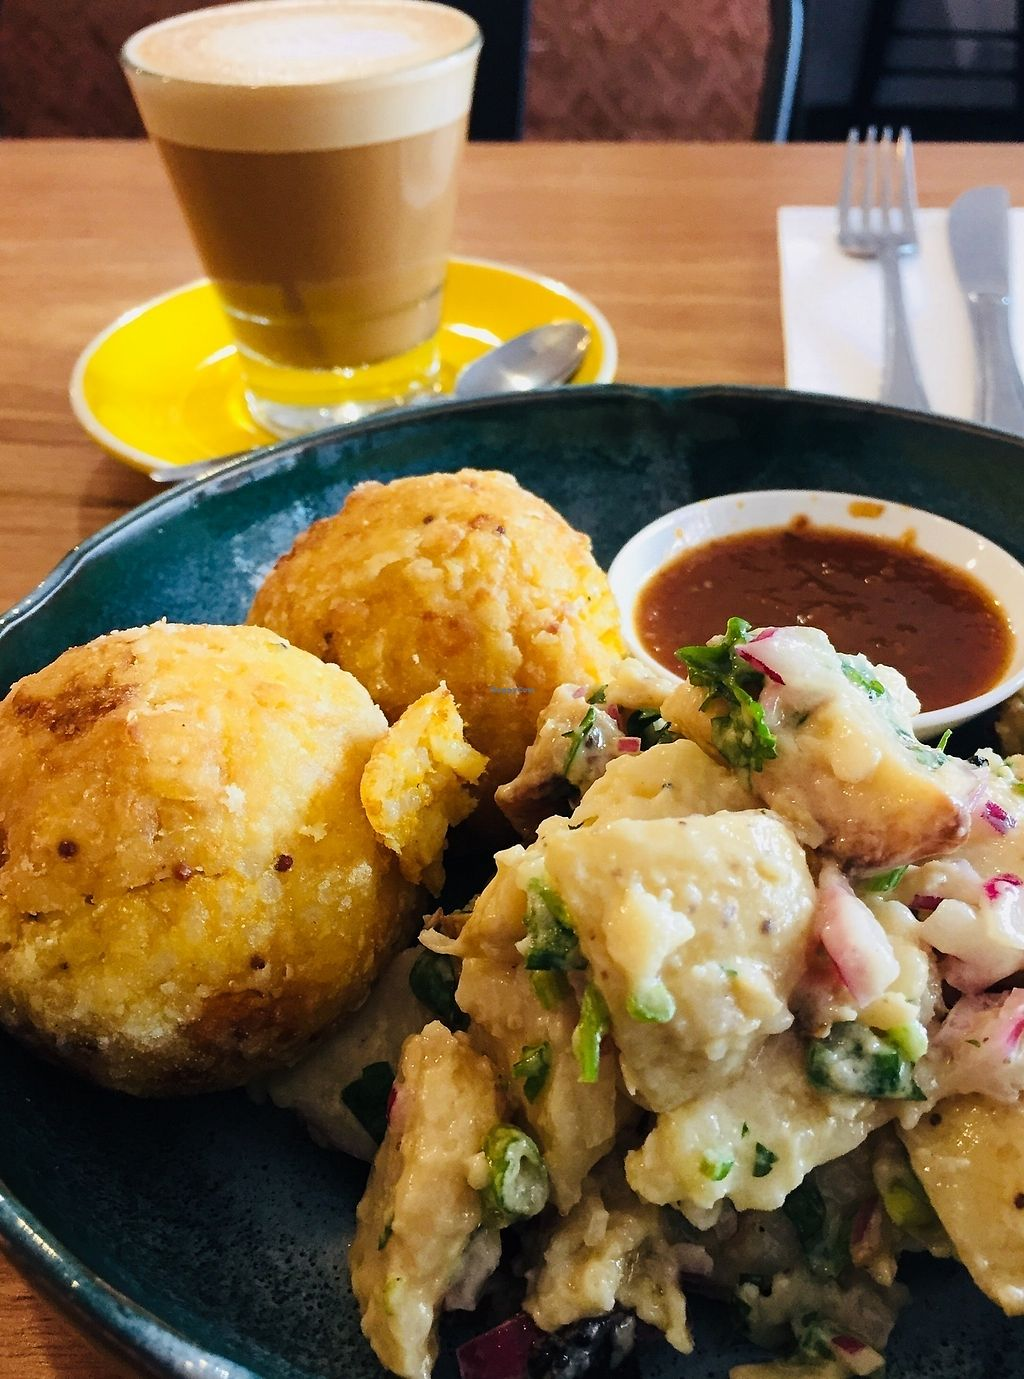 """Photo of The Laughing Owl  by <a href=""""/members/profile/karlaess"""">karlaess</a> <br/>Vegan arancini balls with potato salad <br/> October 16, 2017  - <a href='/contact/abuse/image/61779/315747'>Report</a>"""